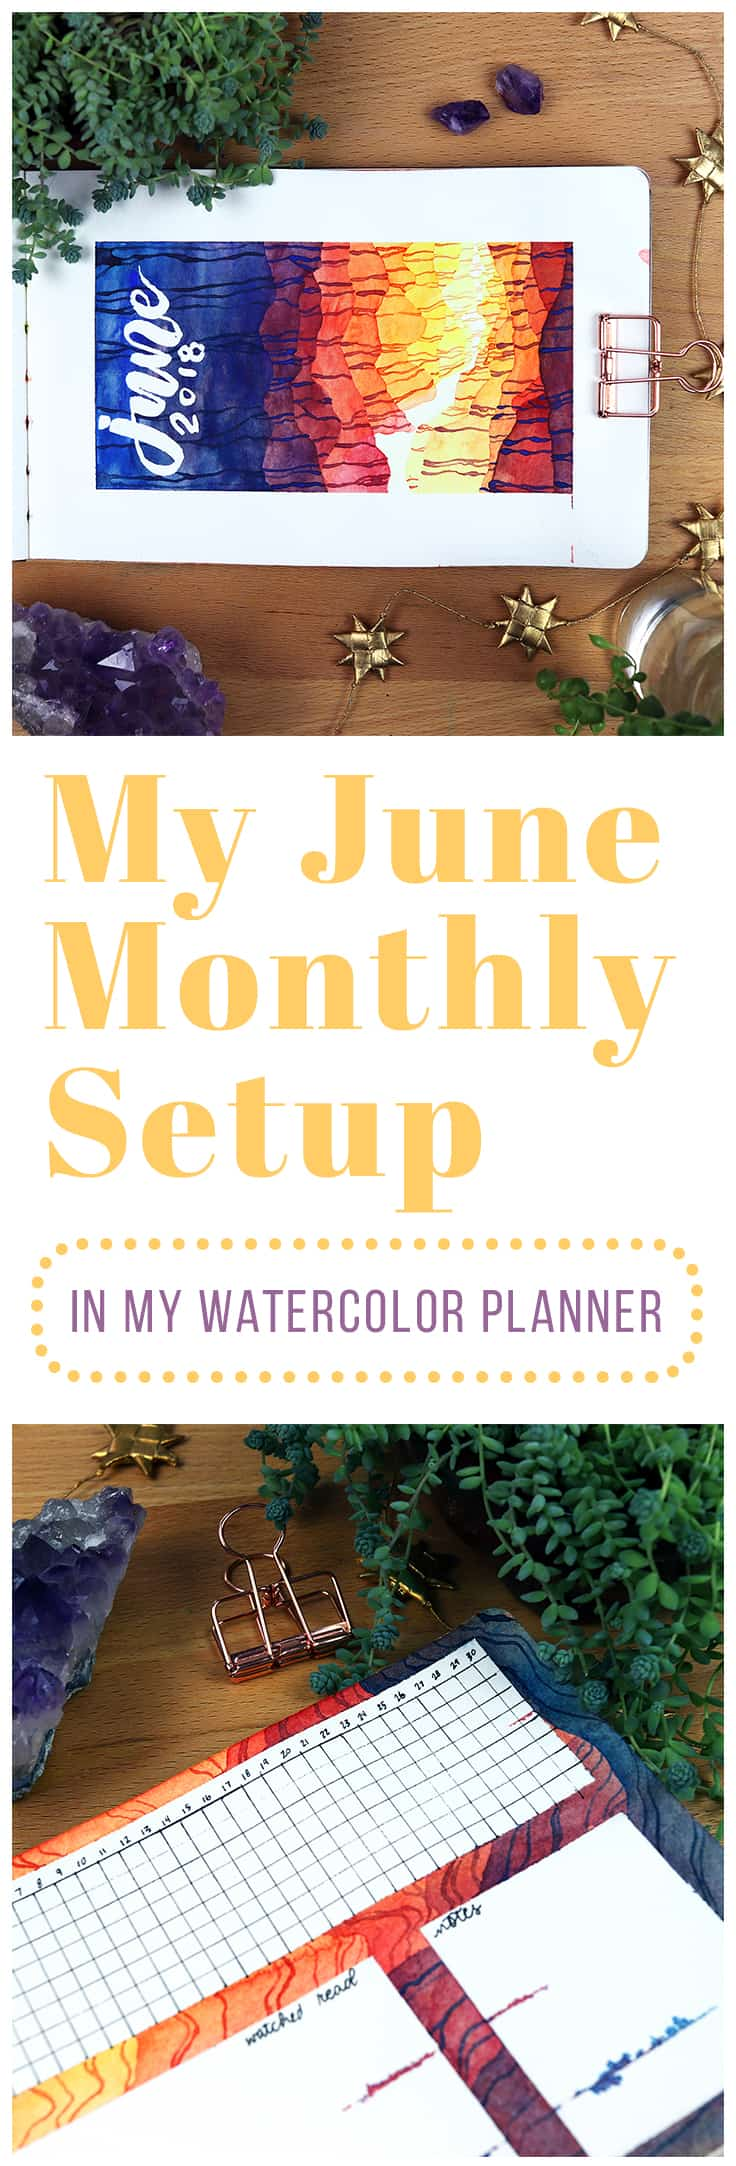 June... what a wonderful month! There are lots of reasons why I enjoy the month of June. First and foremost, June is my birth month! June is also the sixth month of the year, meaning that we're nearly halfway through 2018. That makes June a perfect time to reevaluate your new year's resolutions.  Click the pin to see the setup and check out the materials I used! #bulletjournal #watercolorplanner #bulletjournalmonthly #planner